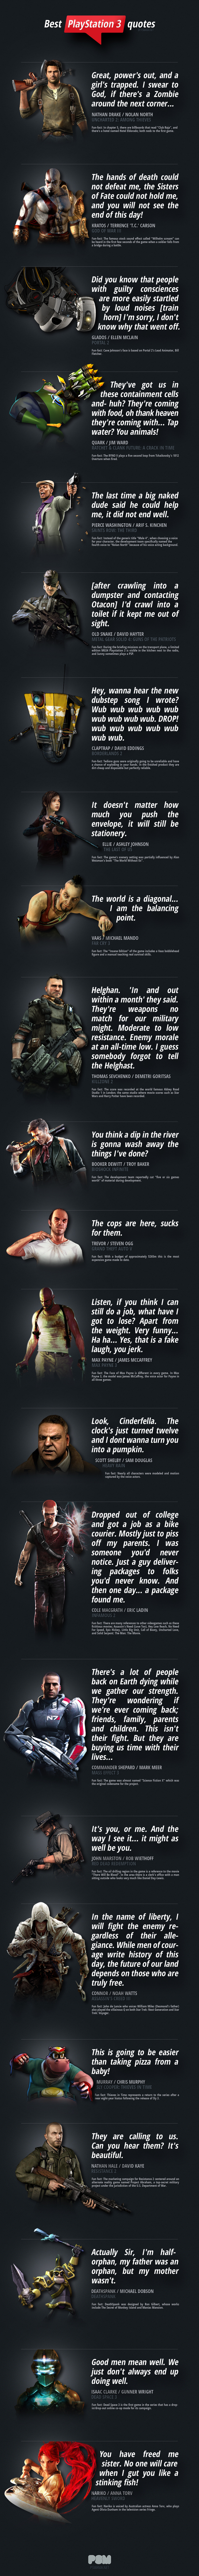 Playstation quote